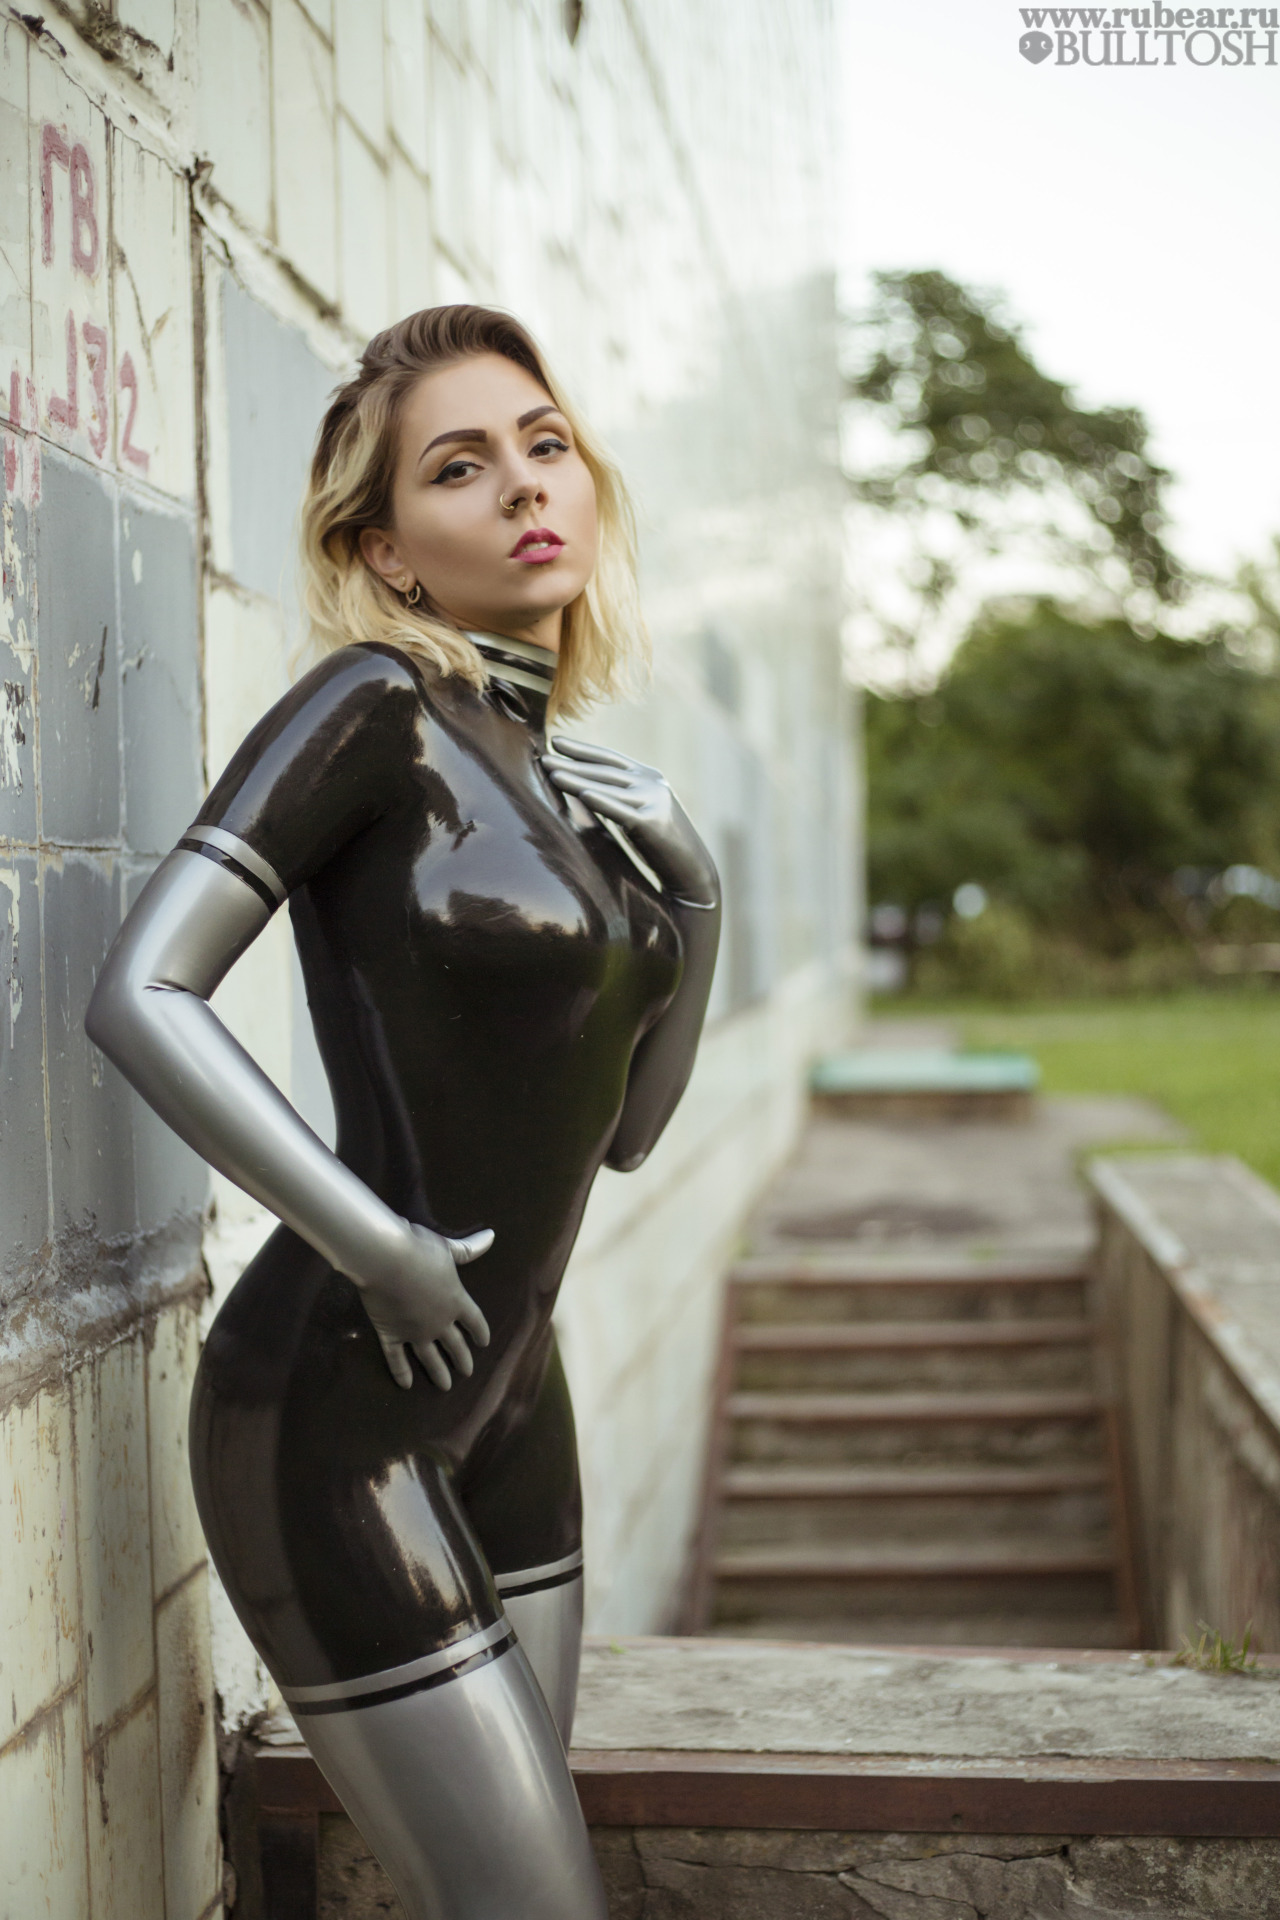 showing porn images for perfect body gif porn AncillaTilia, Catsuit, Corset, Cutegirl, Fuckable, Gloves, Gorgeous, Greatbody, Greatlegs, Latex, Perfecttoy, Redlips, Wanttofuckher